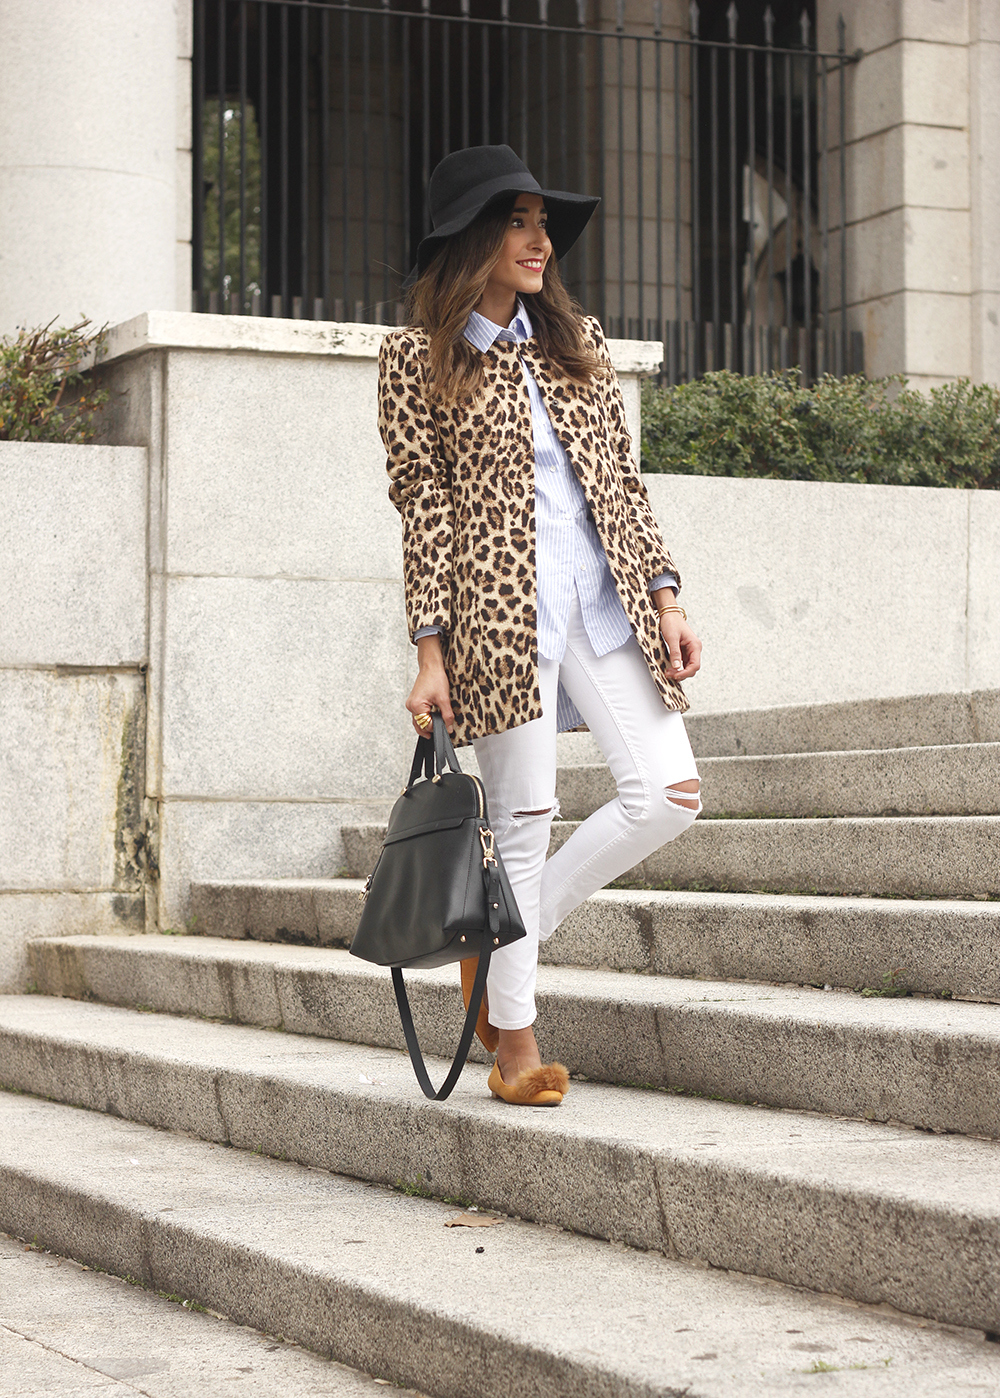 Leopard print coat white ripped jeans flats accesories black hat furla bag aristocrazy ring outfit style15